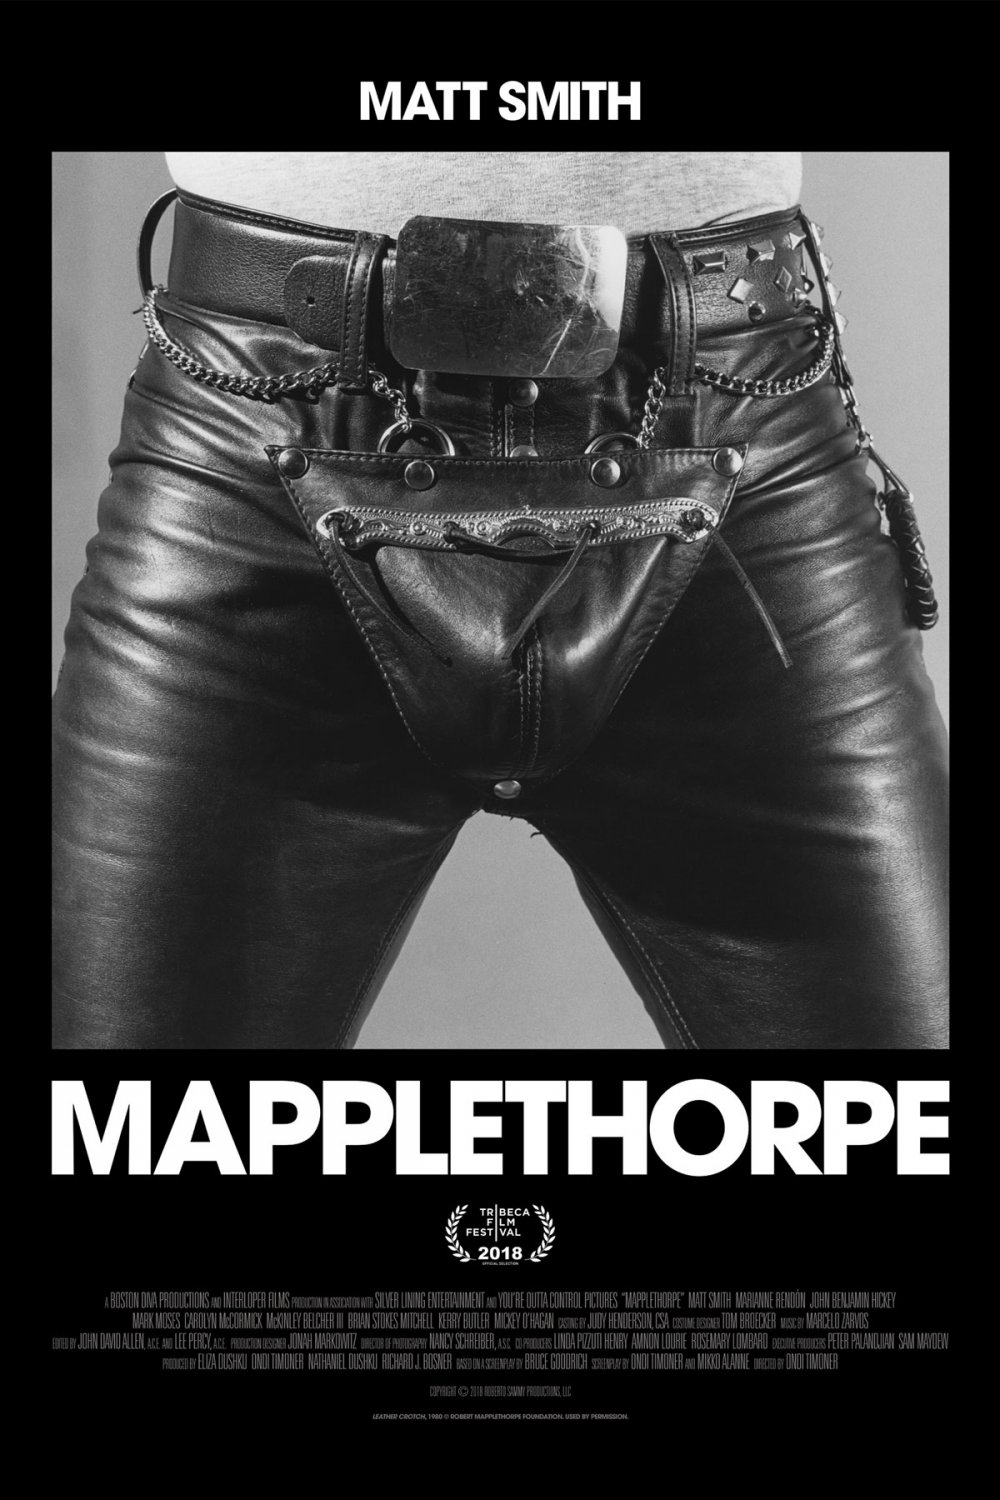 <strong>Mapplethorpe</strong> – Matt Smith stars as legendary photographer Robert Mapplethorpe in this full-frontal homage to the devilish bad boy, whose sex life fuelled his career